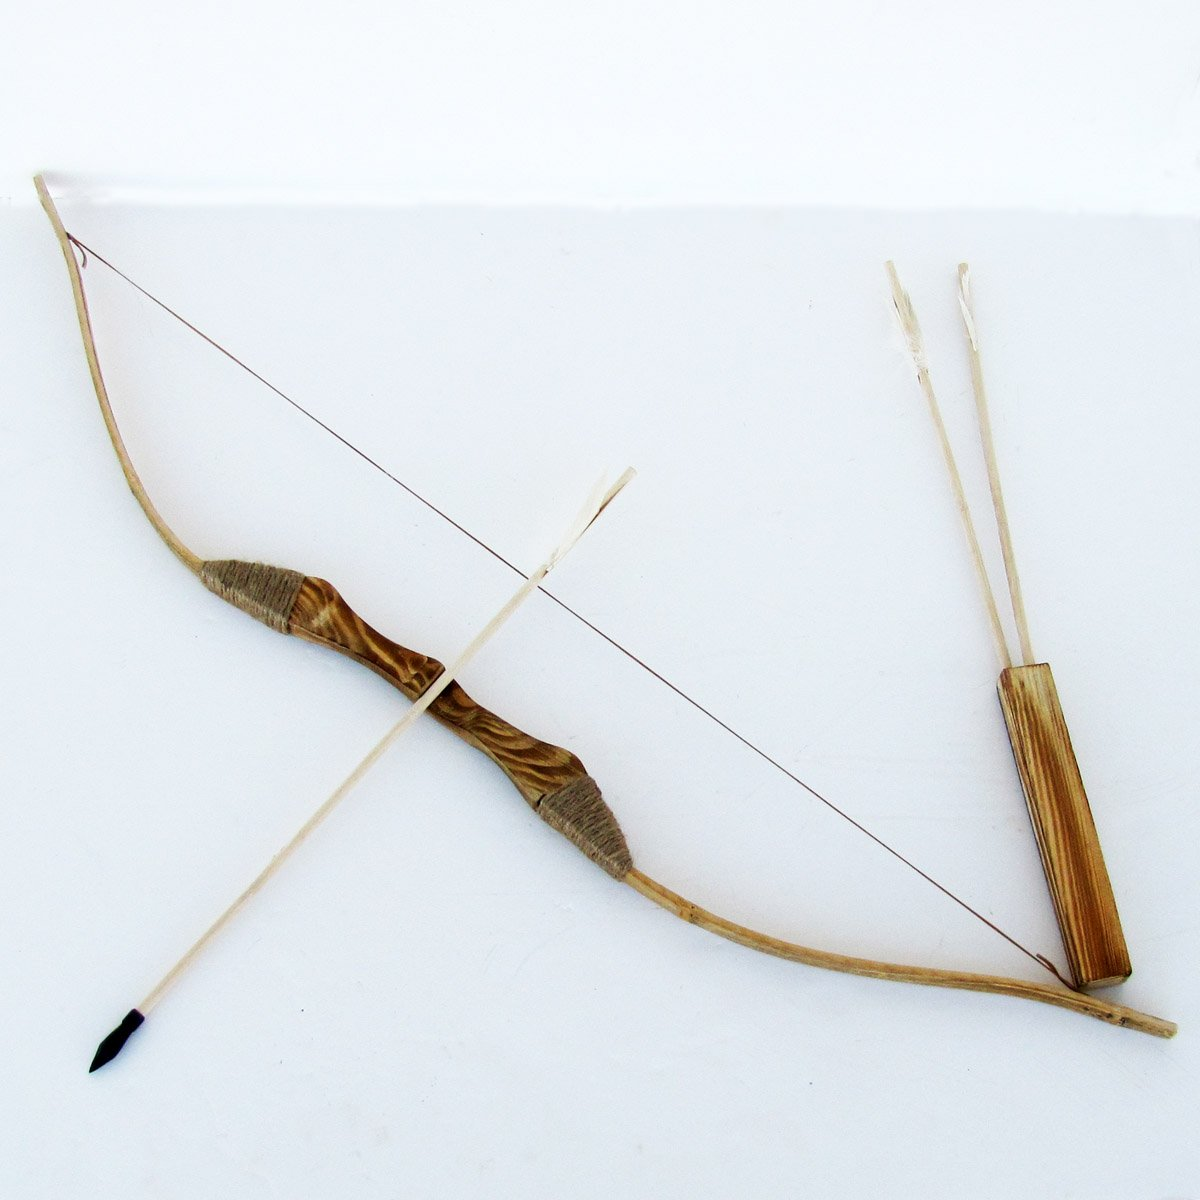 Real Bow And Arrow Image Gallery katniss ...